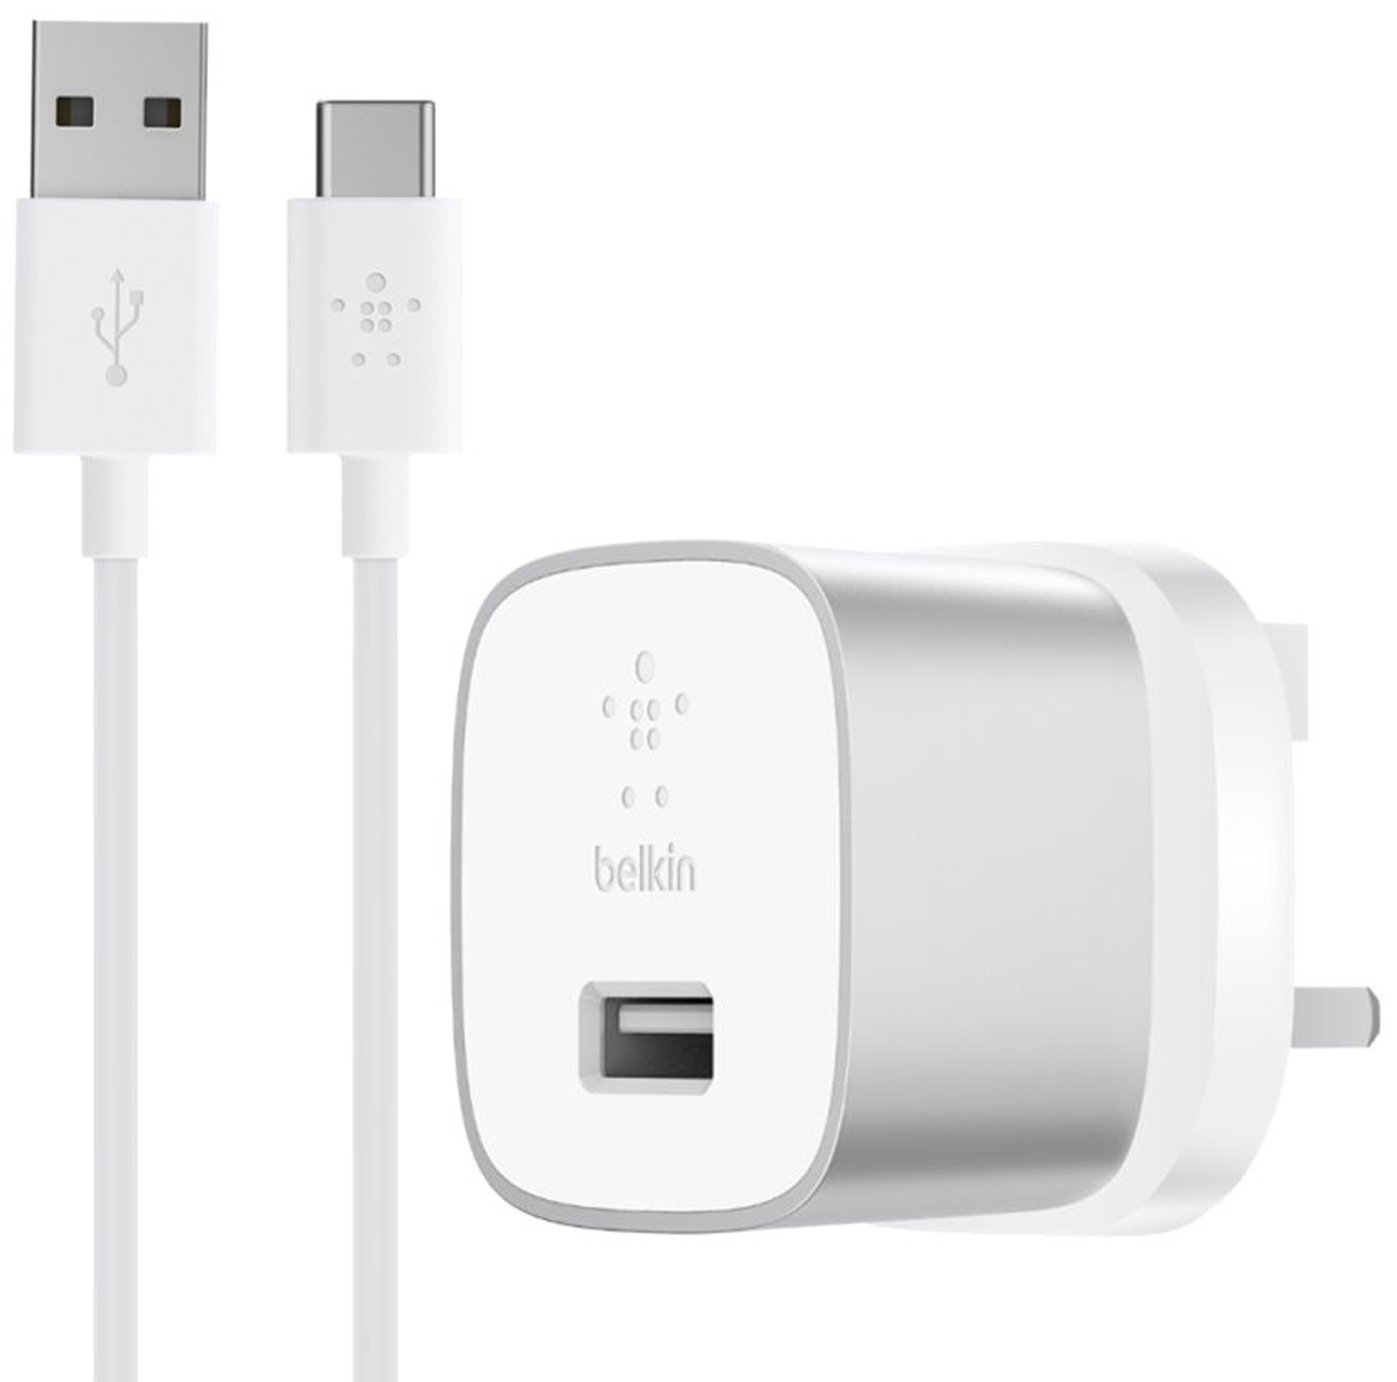 Belkin Wall Charger with USB-A to USB-C Cable - Silver